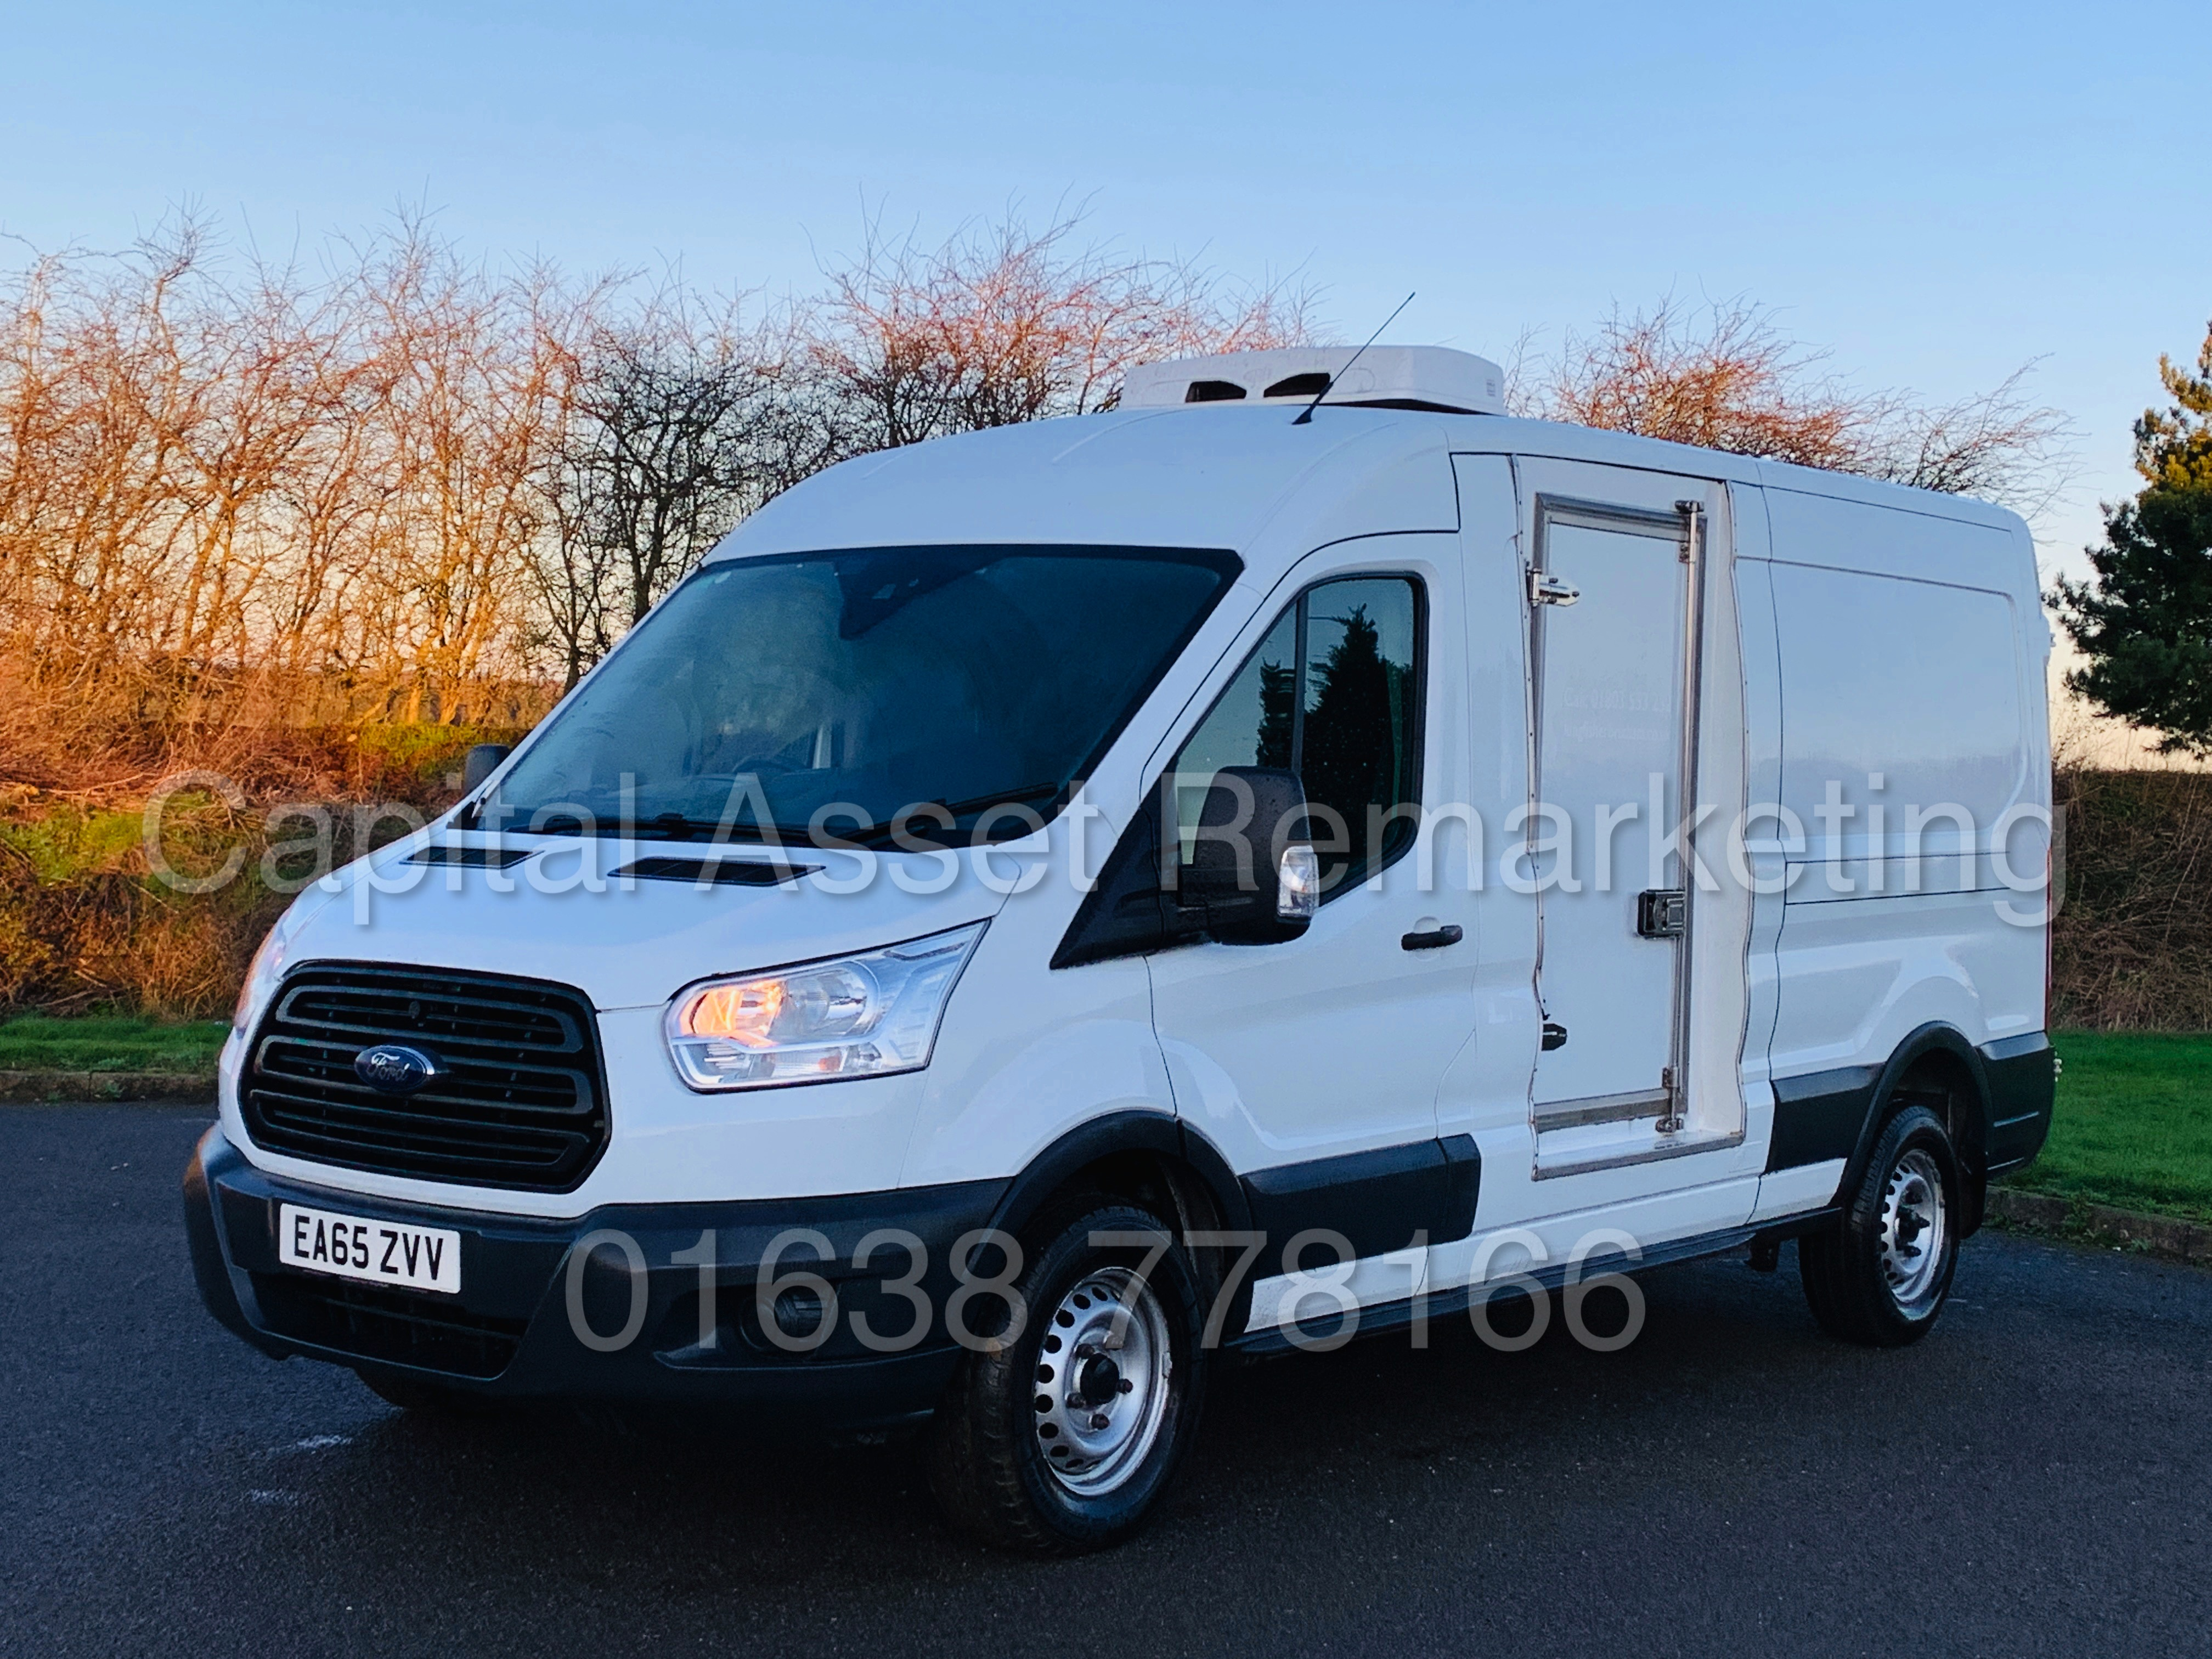 (On Sale) FORD TRANSIT T350 *LWB - REFRIGERATED VAN* (65 REG) '2.2 TDCI -125 BHP- 6 SPEED' (1 OWNER) - Image 6 of 43